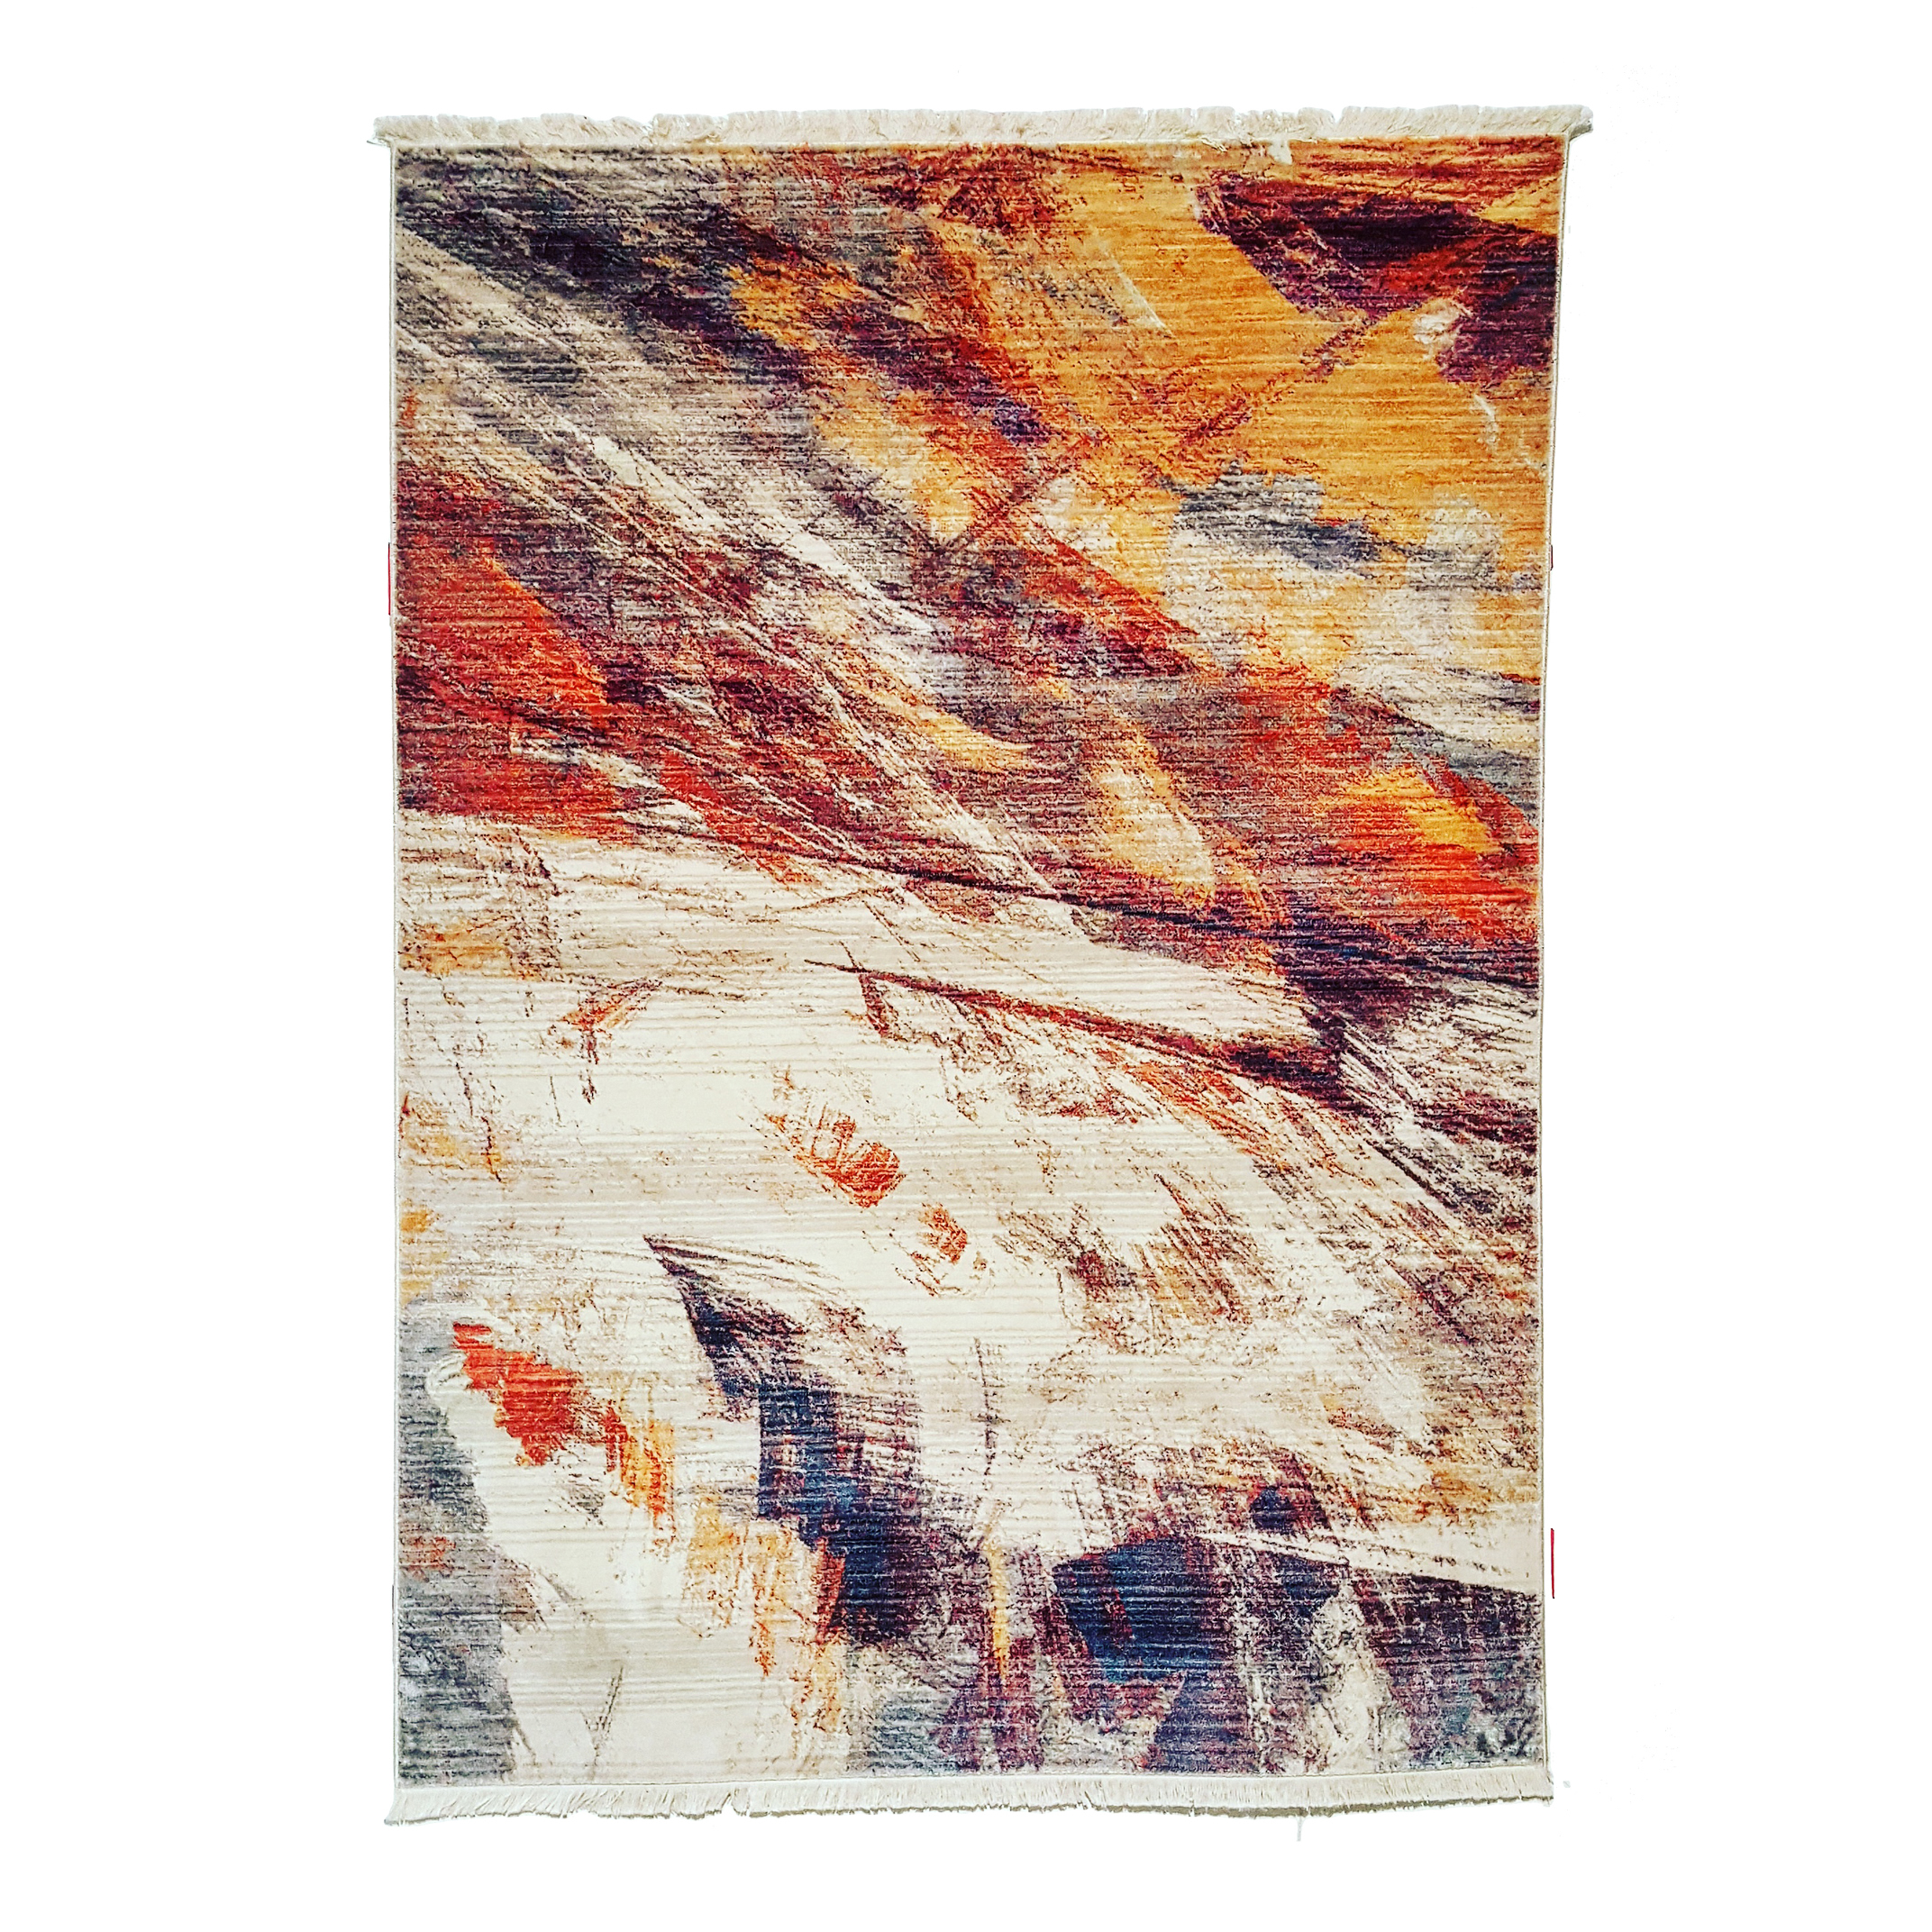 KALKAN Turkish art rug from morelli rugs